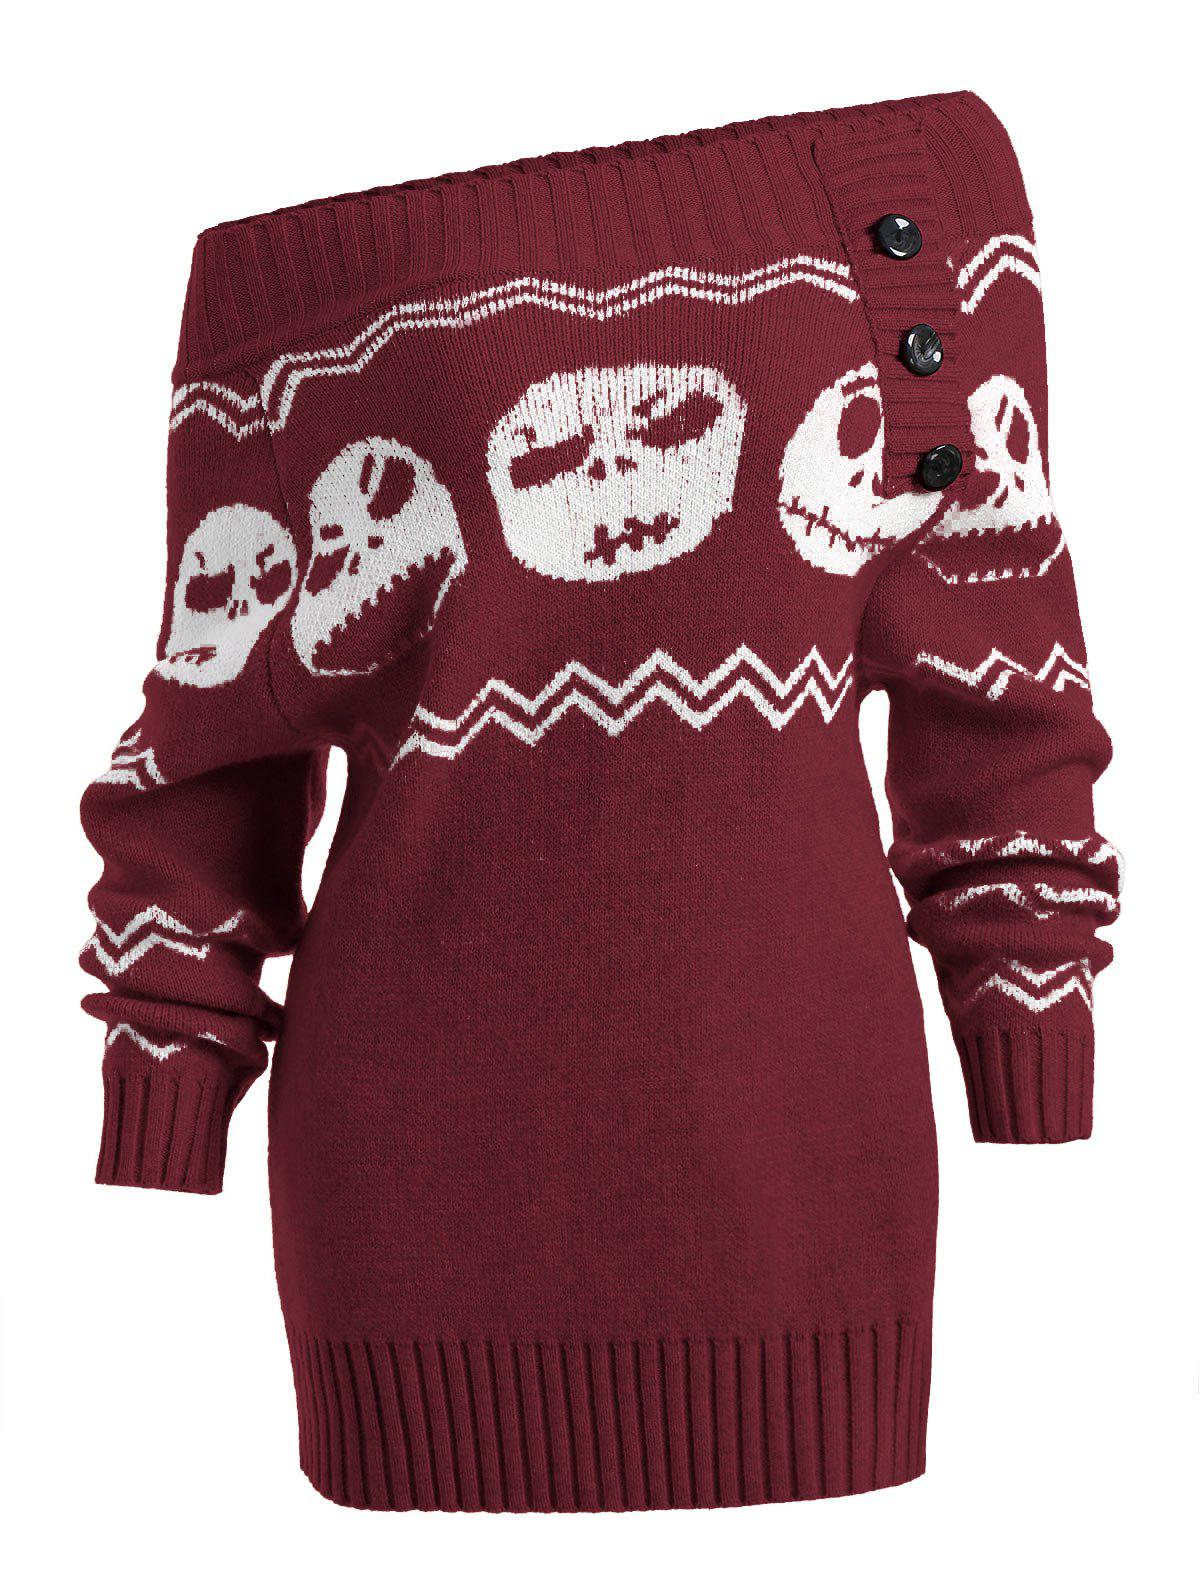 Skull Off Shoulder Tunic SweaterWOMEN<br><br>Size: L; Color: CLARET; Type: Pullovers; Material: Acrylic; Sleeve Length: Full; Collar: Off The Shoulder; Style: Fashion; Pattern Type: Skulls; Season: Fall,Spring,Winter; Elasticity: Elastic; Weight: 0.4900kg; Package Contents: 1 x Sweater;